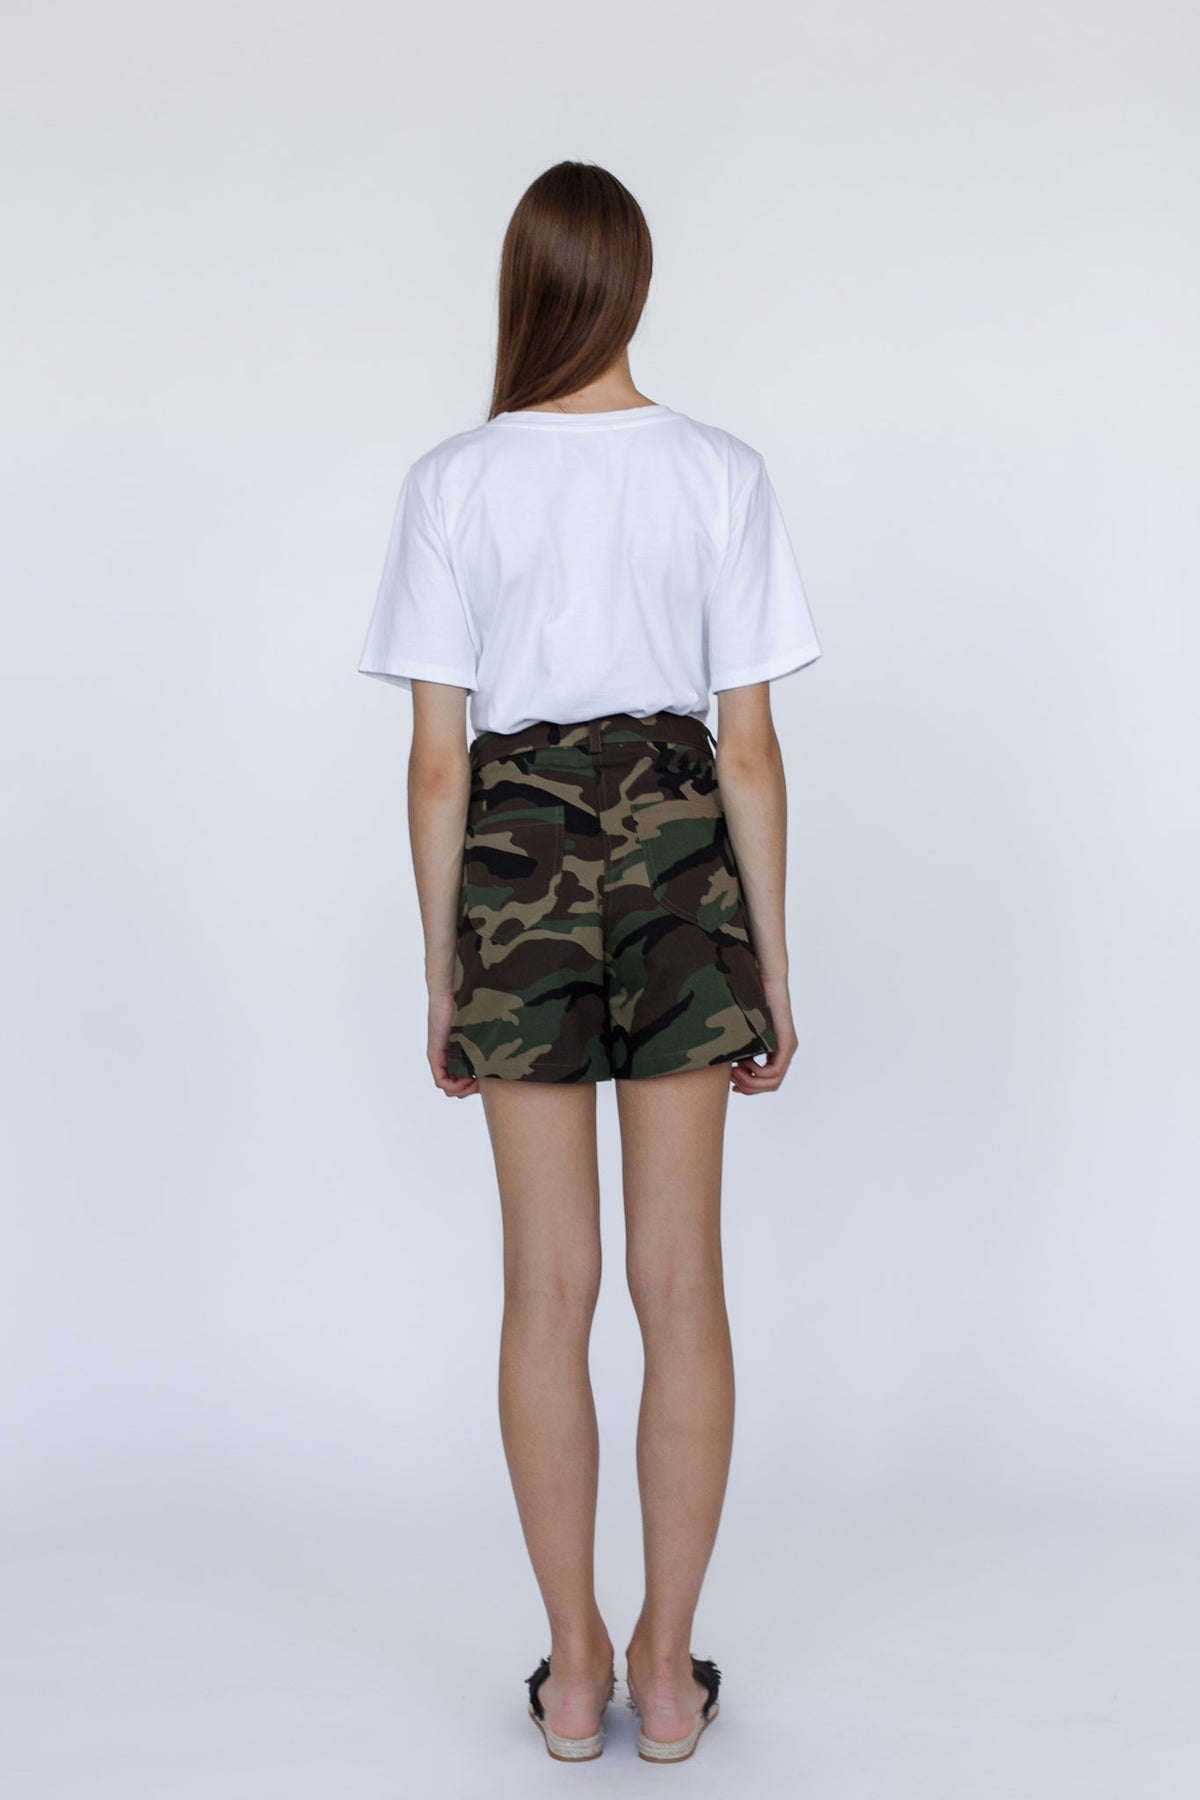 Camo-Series-Camouflage-Print-Shorts-Bottoms-Clothing-le-slap.jpg